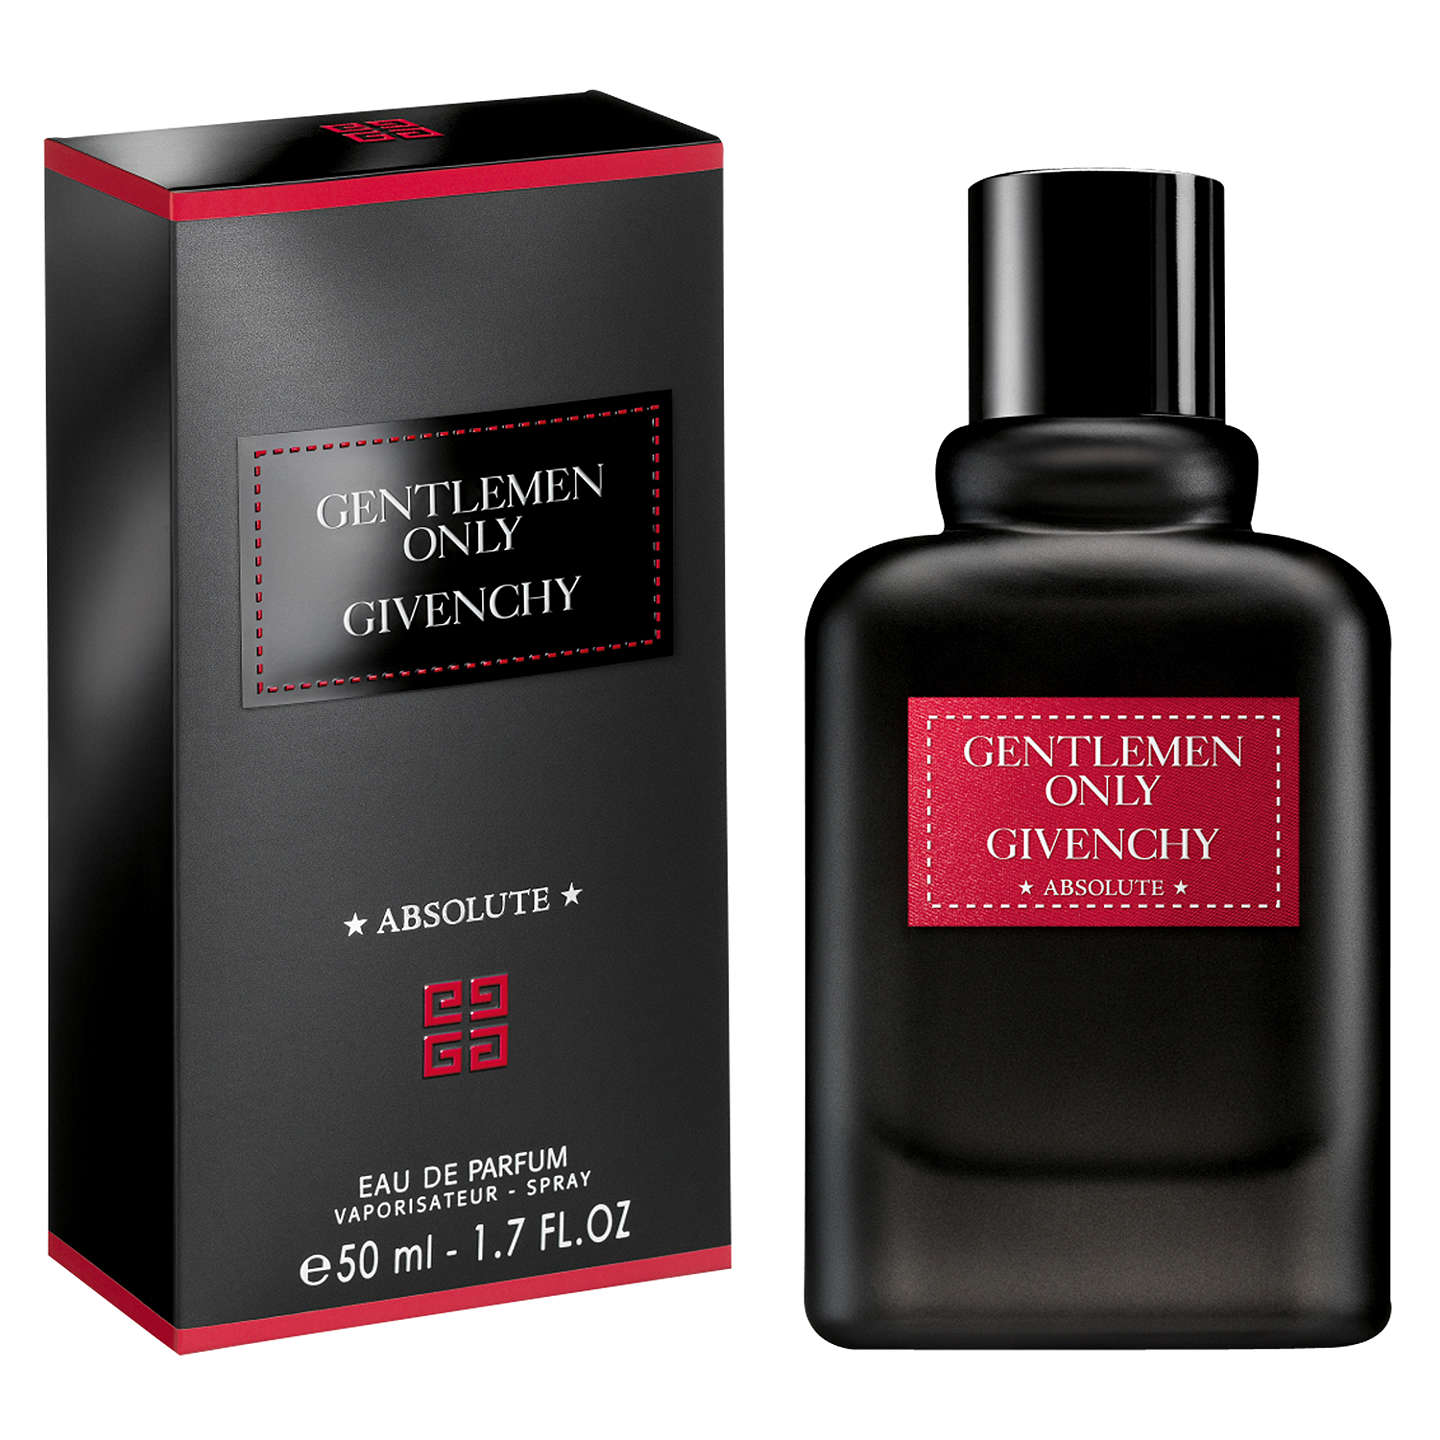 BuyGivenchy Gentlemen Only Absolute Eau de Parfum, 50ml Online at johnlewis.com